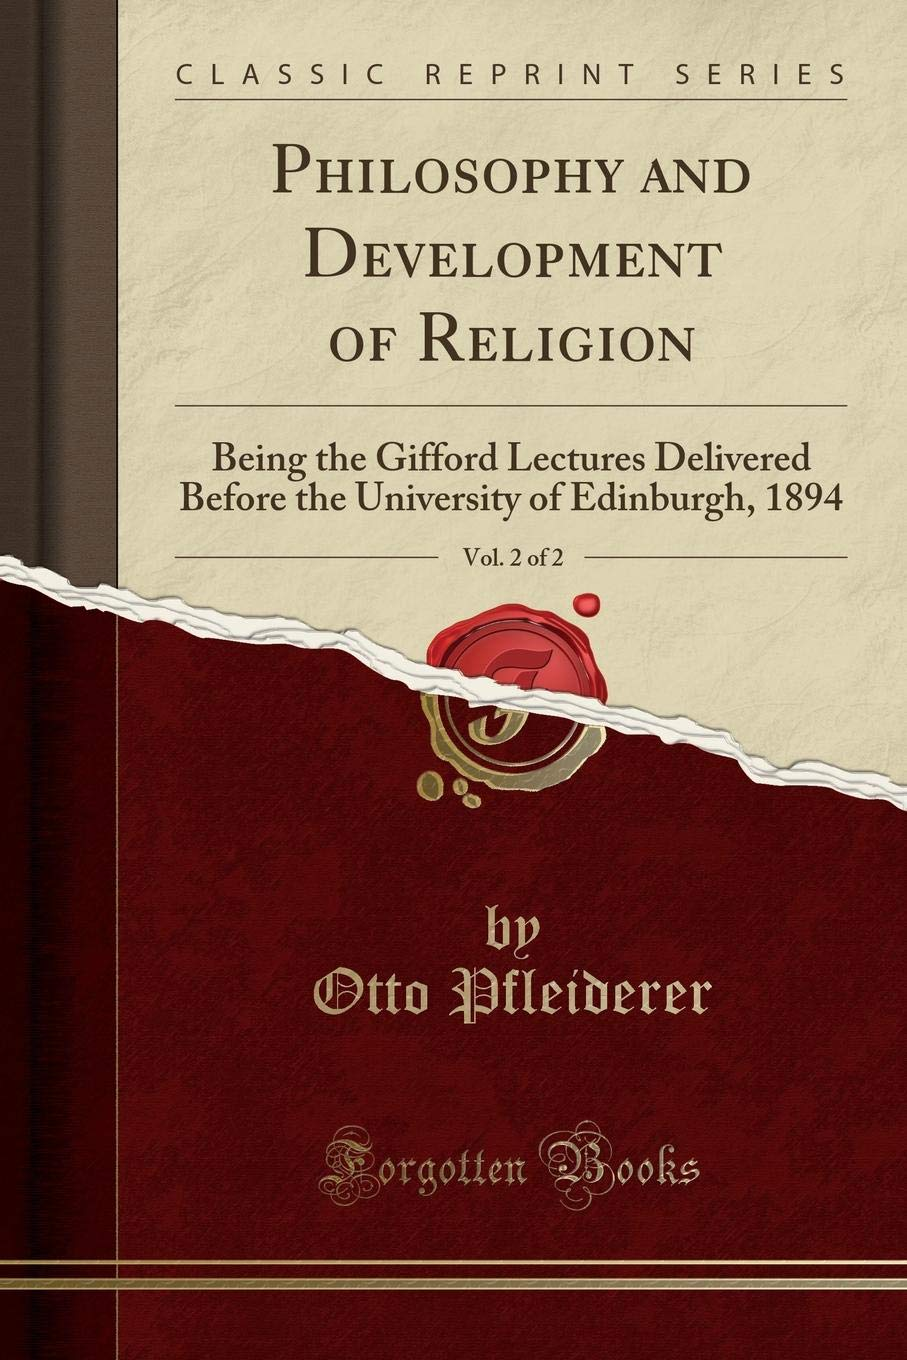 Download Philosophy and Development of Religion, Vol. 2 of 2: Being the Gifford Lectures Delivered Before the University of Edinburgh, 1894 (Classic Reprint) pdf